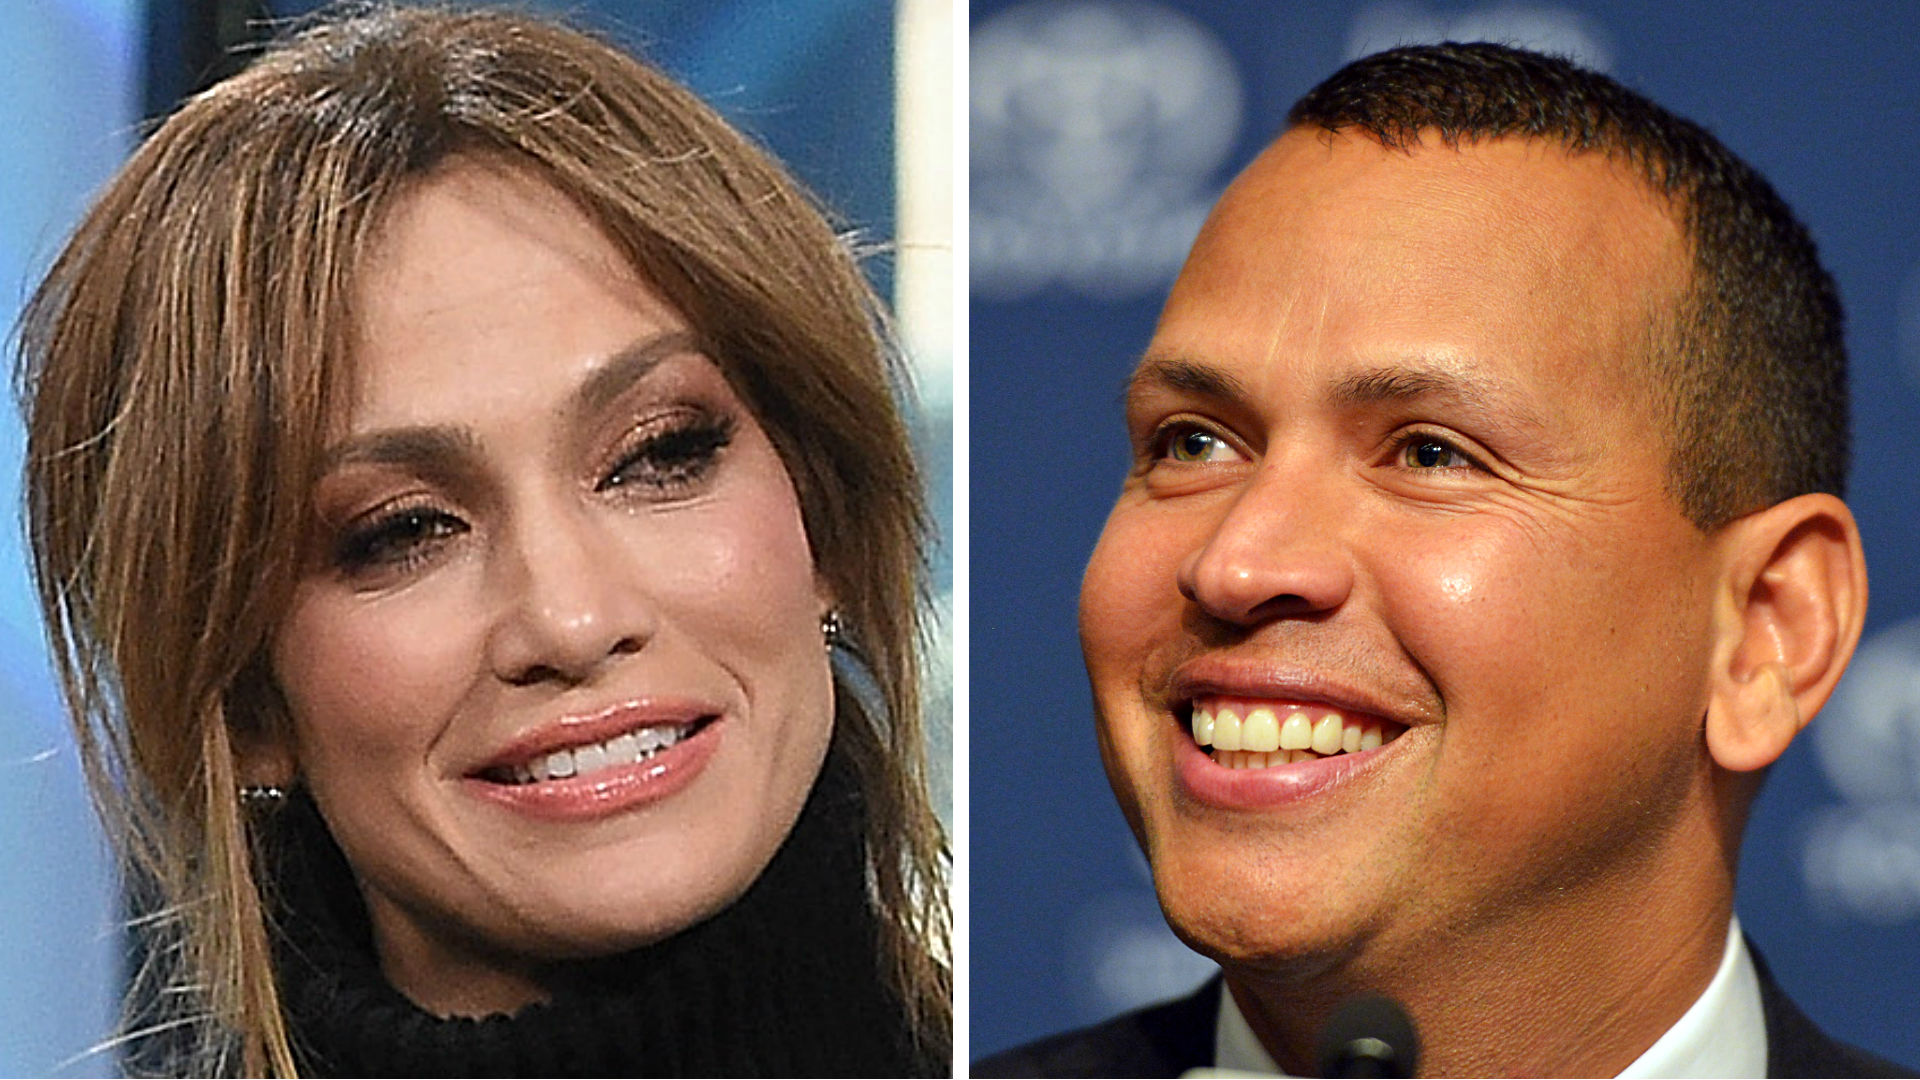 A-Rod/J-Lo reported bid to buy Mets includes investor who lost out on Marlins to Derek Jeter group